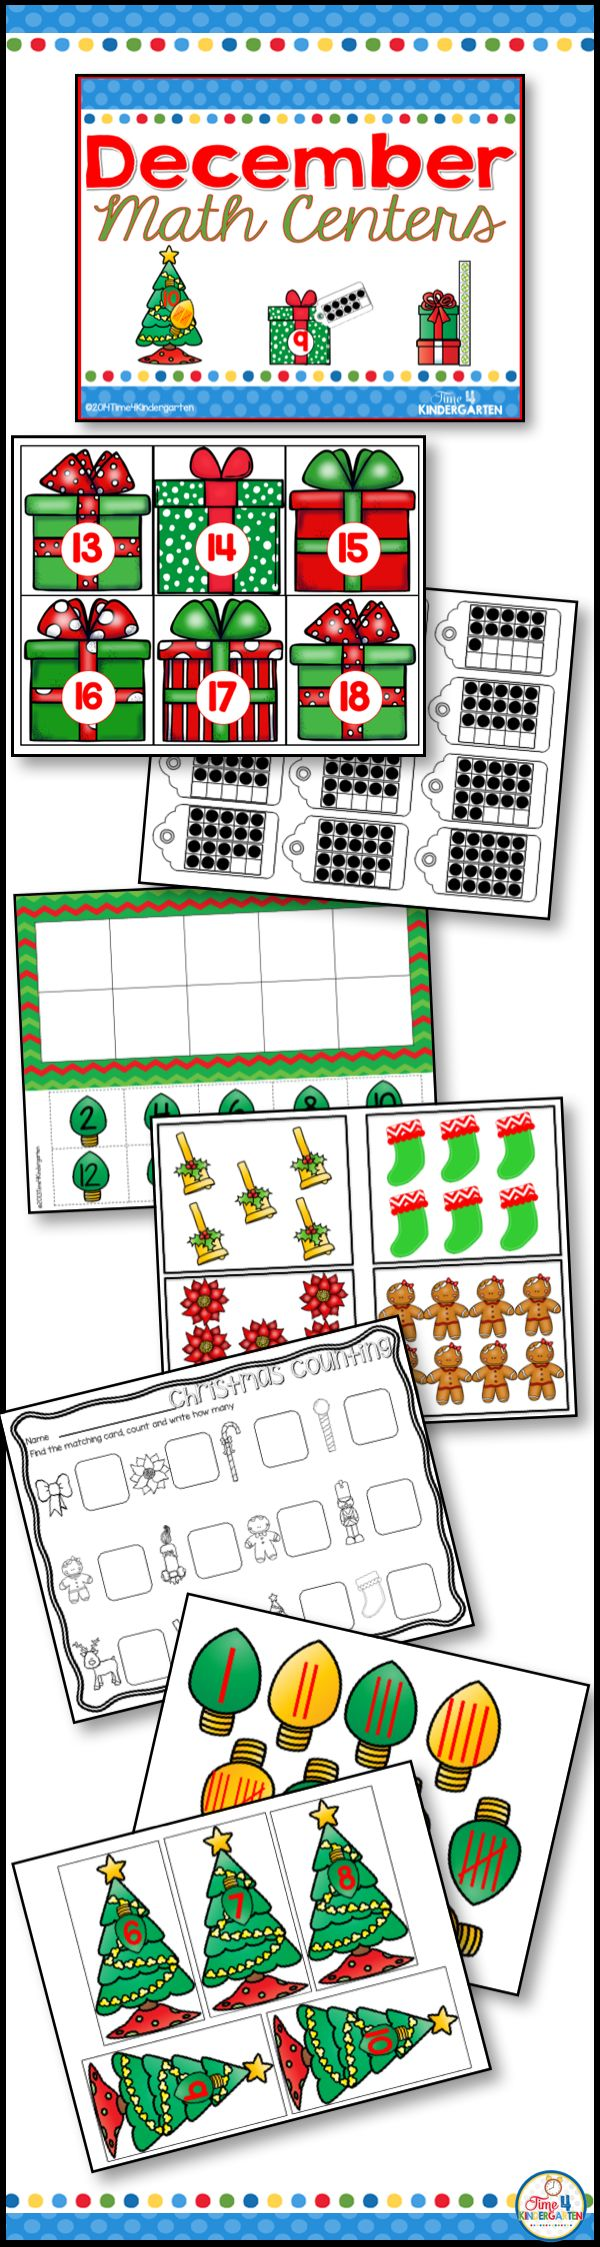 Christmas themed math centers for kindergarten. Colorful engaging math centers for the holiday season. Counting, measurement ten frames and tally marks are all included in this resource.